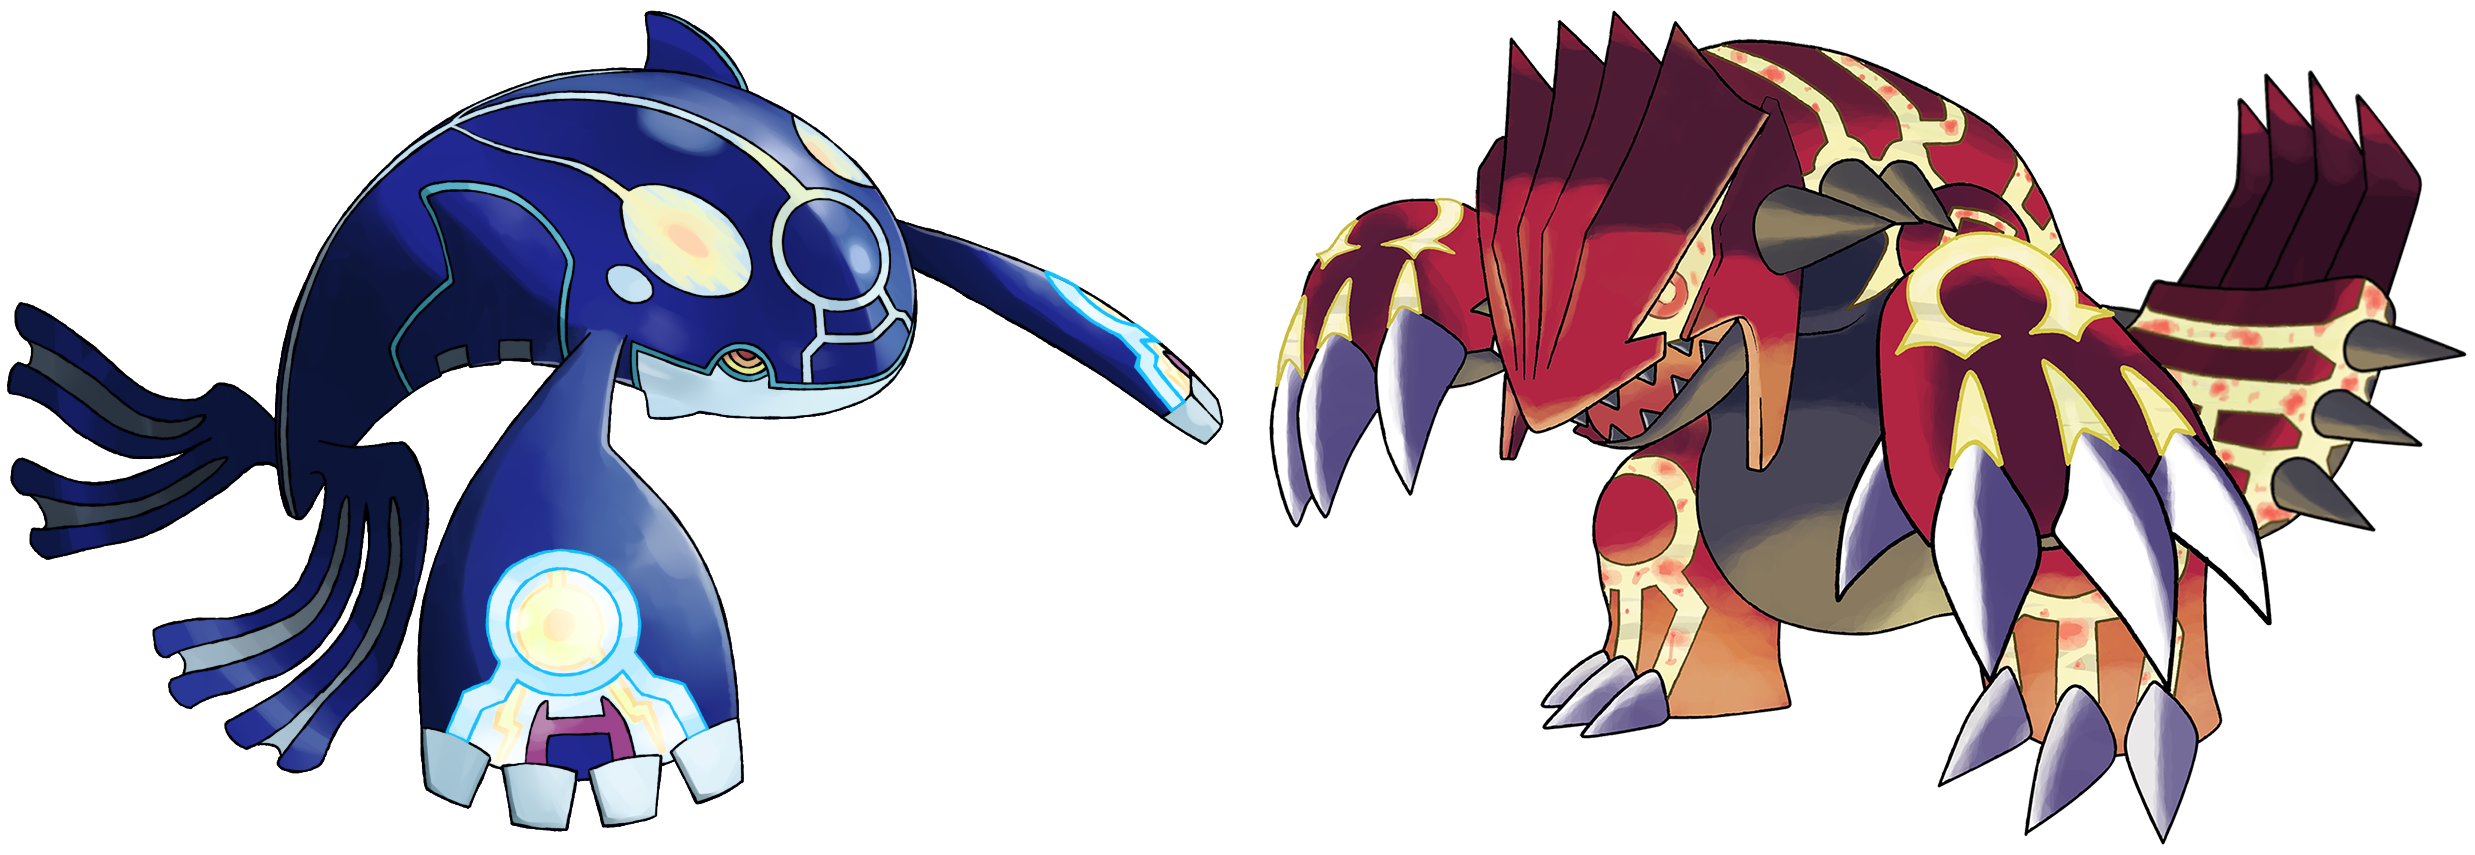 Prime Kyogre and Groudon.